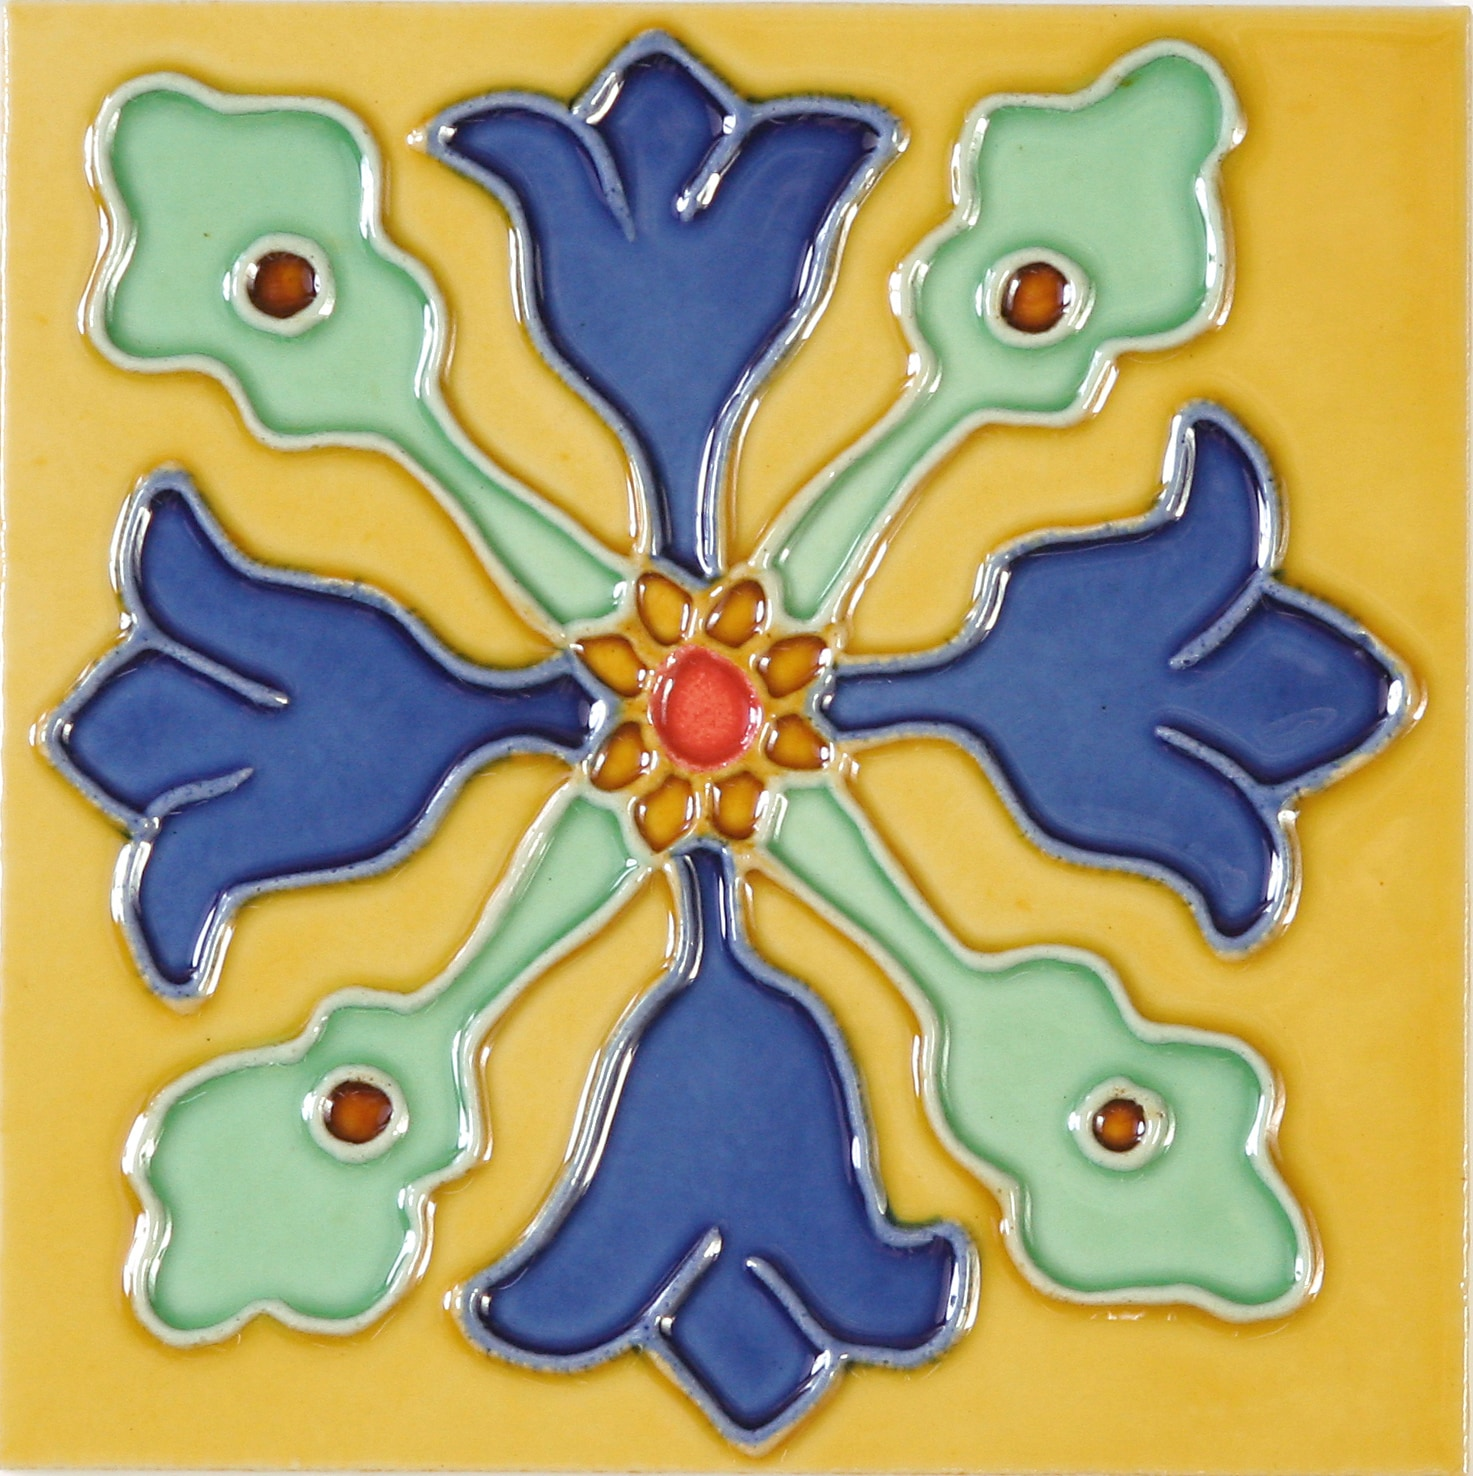 Hand-Painted Ceramic Glazed Wall Tile in Hermosa Hand-Painted Ceramic Glazed Wall Tile in Hermosa 0